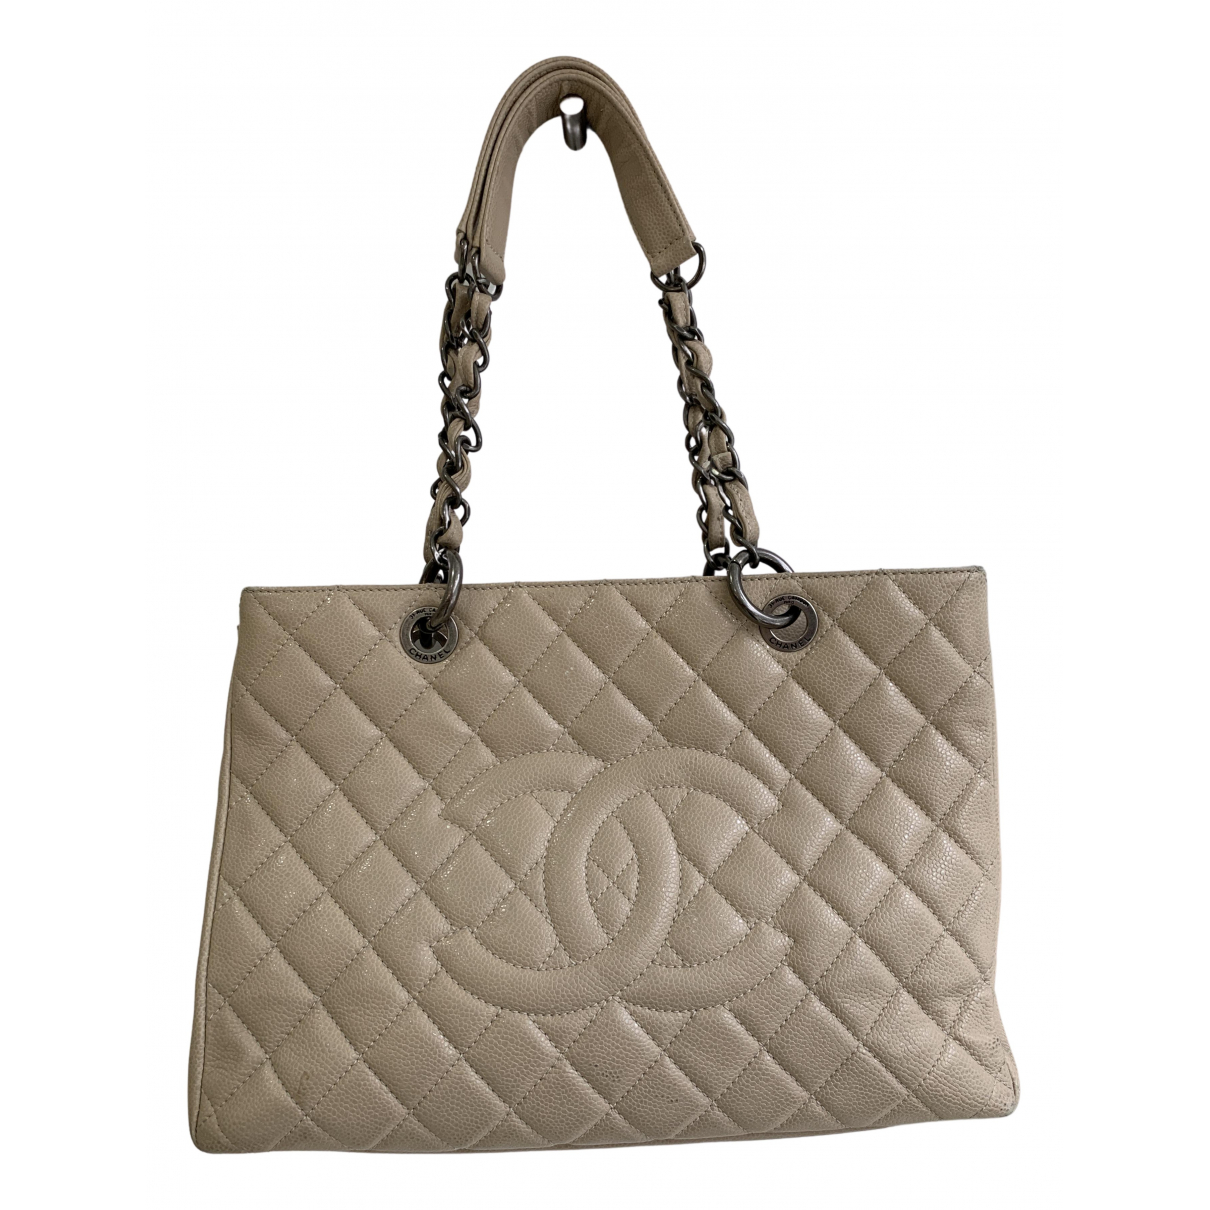 Chanel Grand shopping Beige Leather handbag for Women N